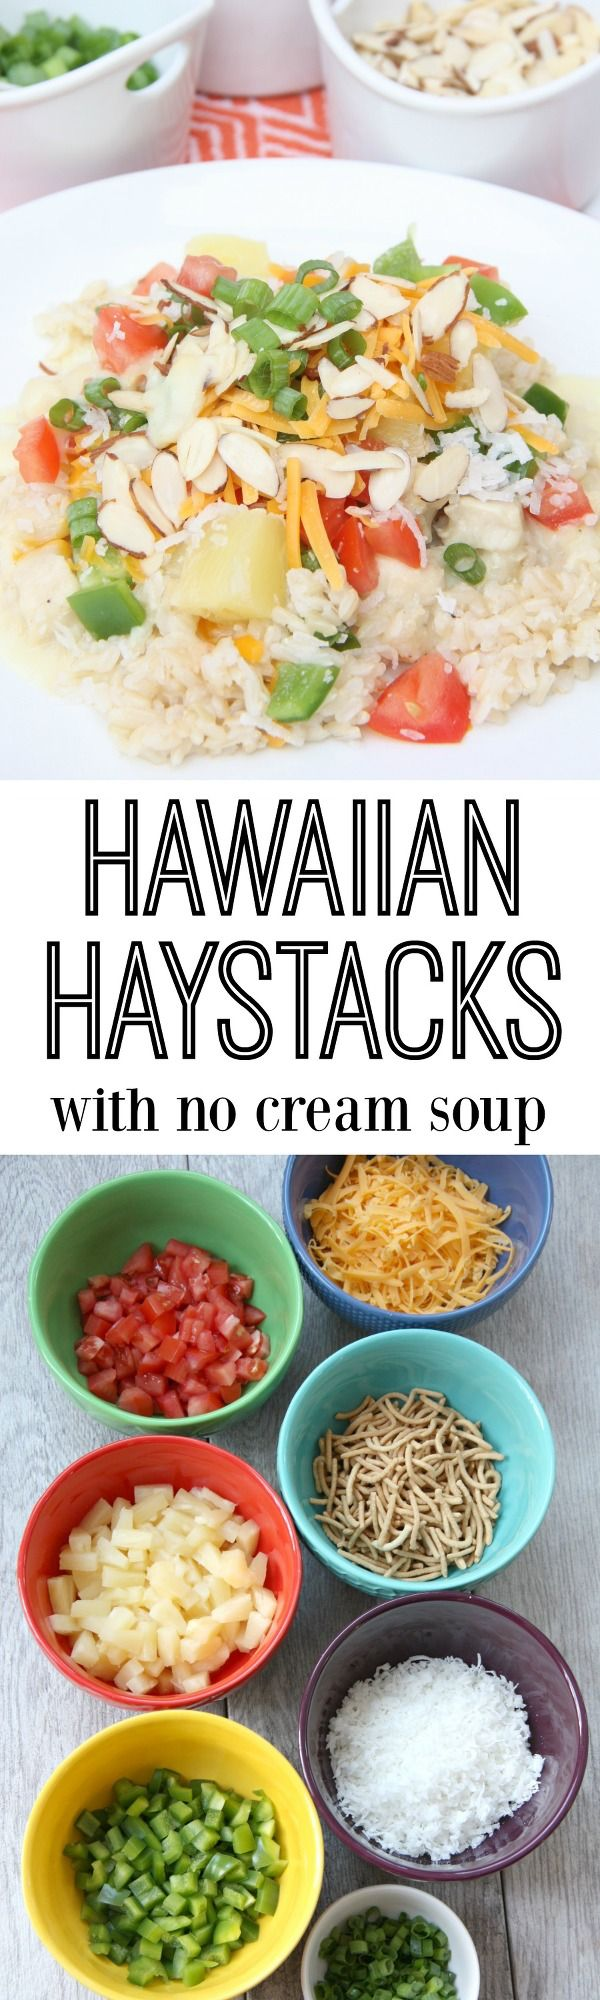 Hawaiian Haystacks with a homemade chicken gravy with no cream soup. It's a family favorite recipe that everyone loves!